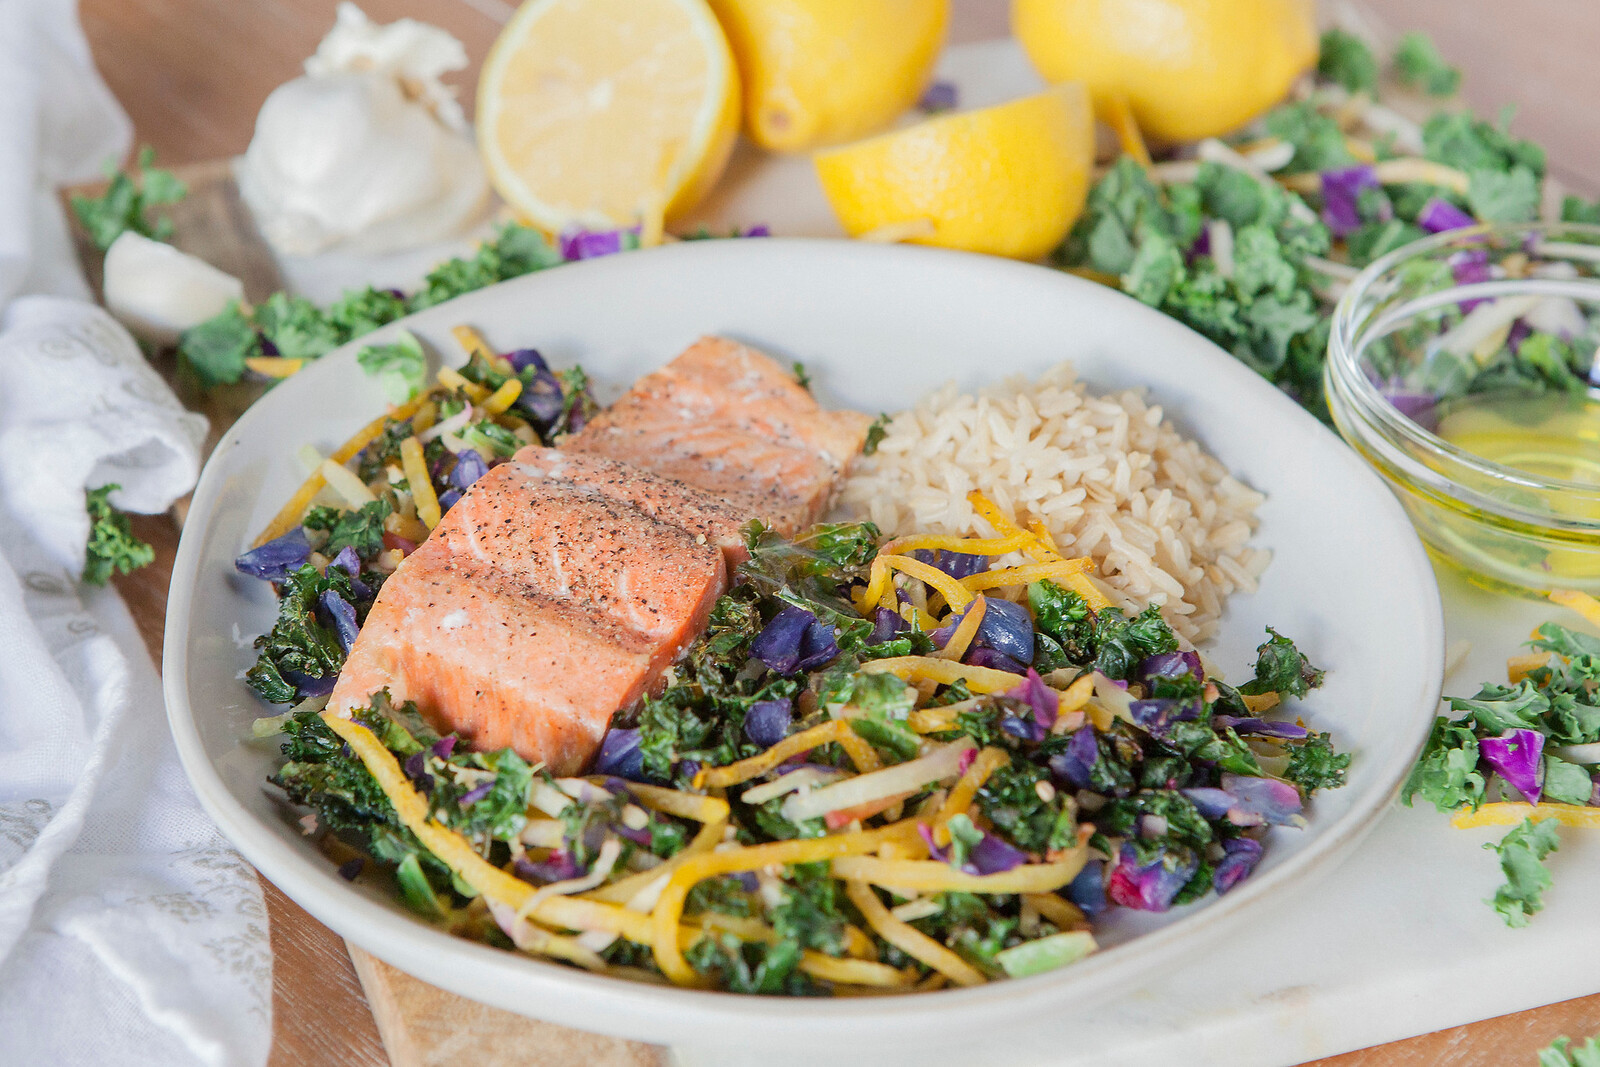 0011_NutritionTwins-kale-beet-salmon